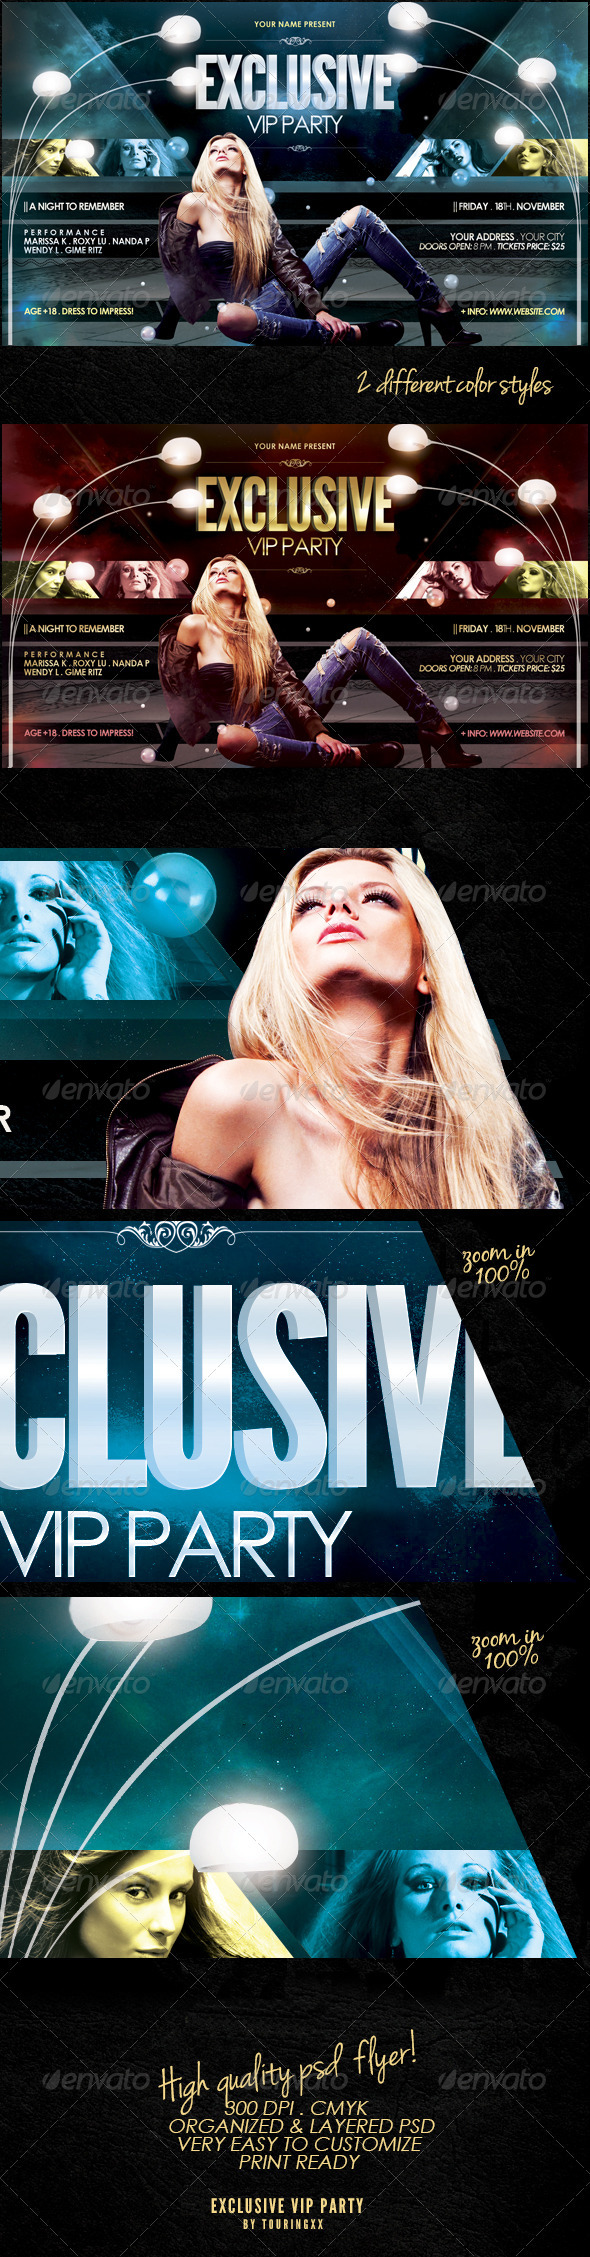 Exclusive Vip Party Flyer Template - Events Flyers